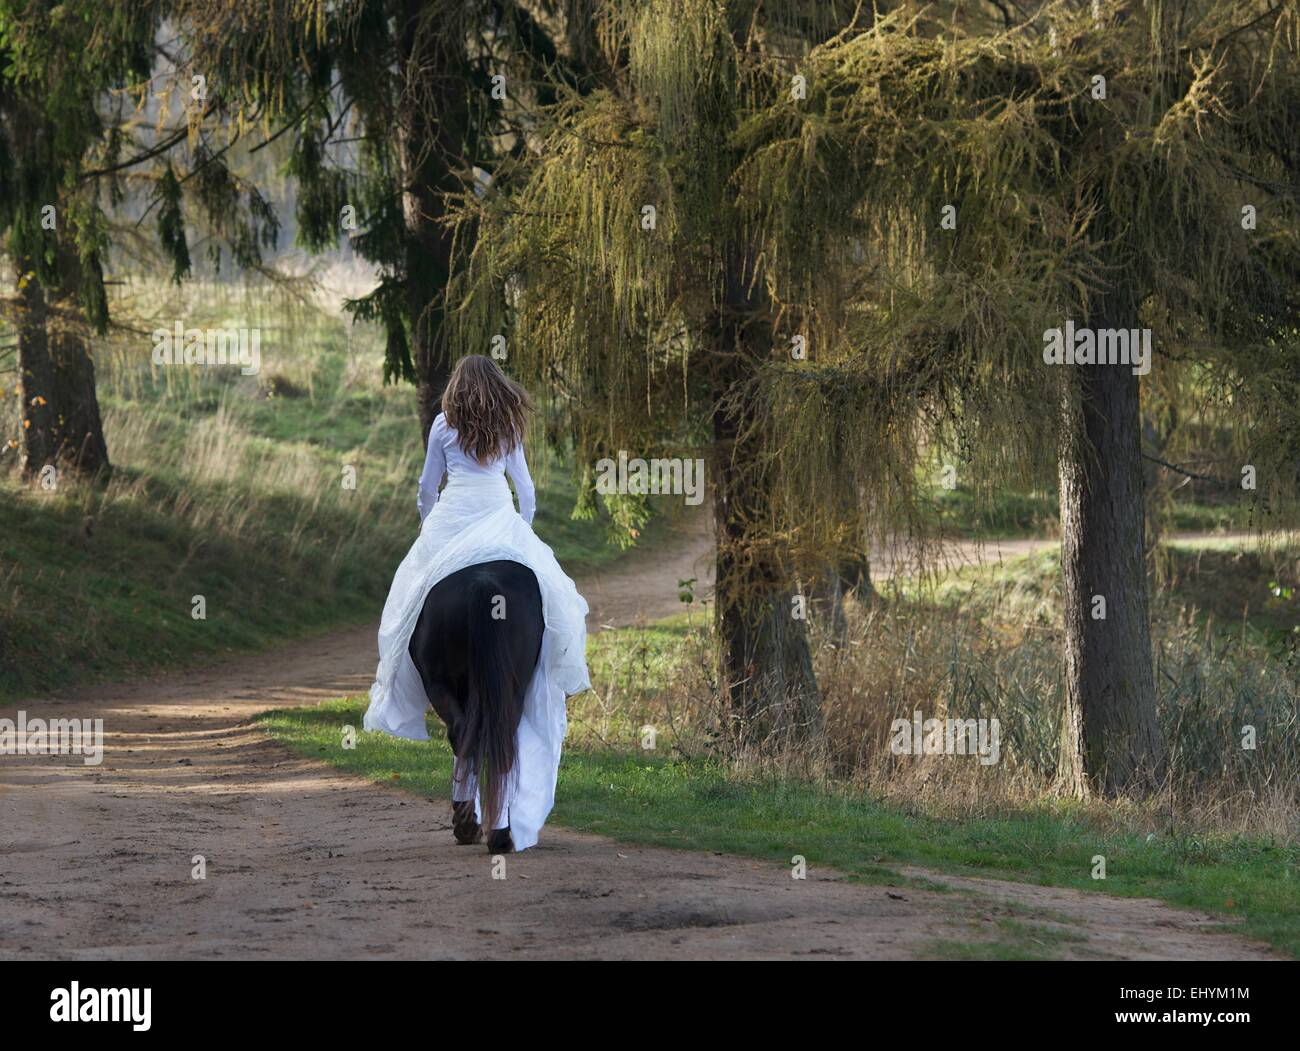 Rear view of a mature woman riding a horse in a white dress - Stock Image